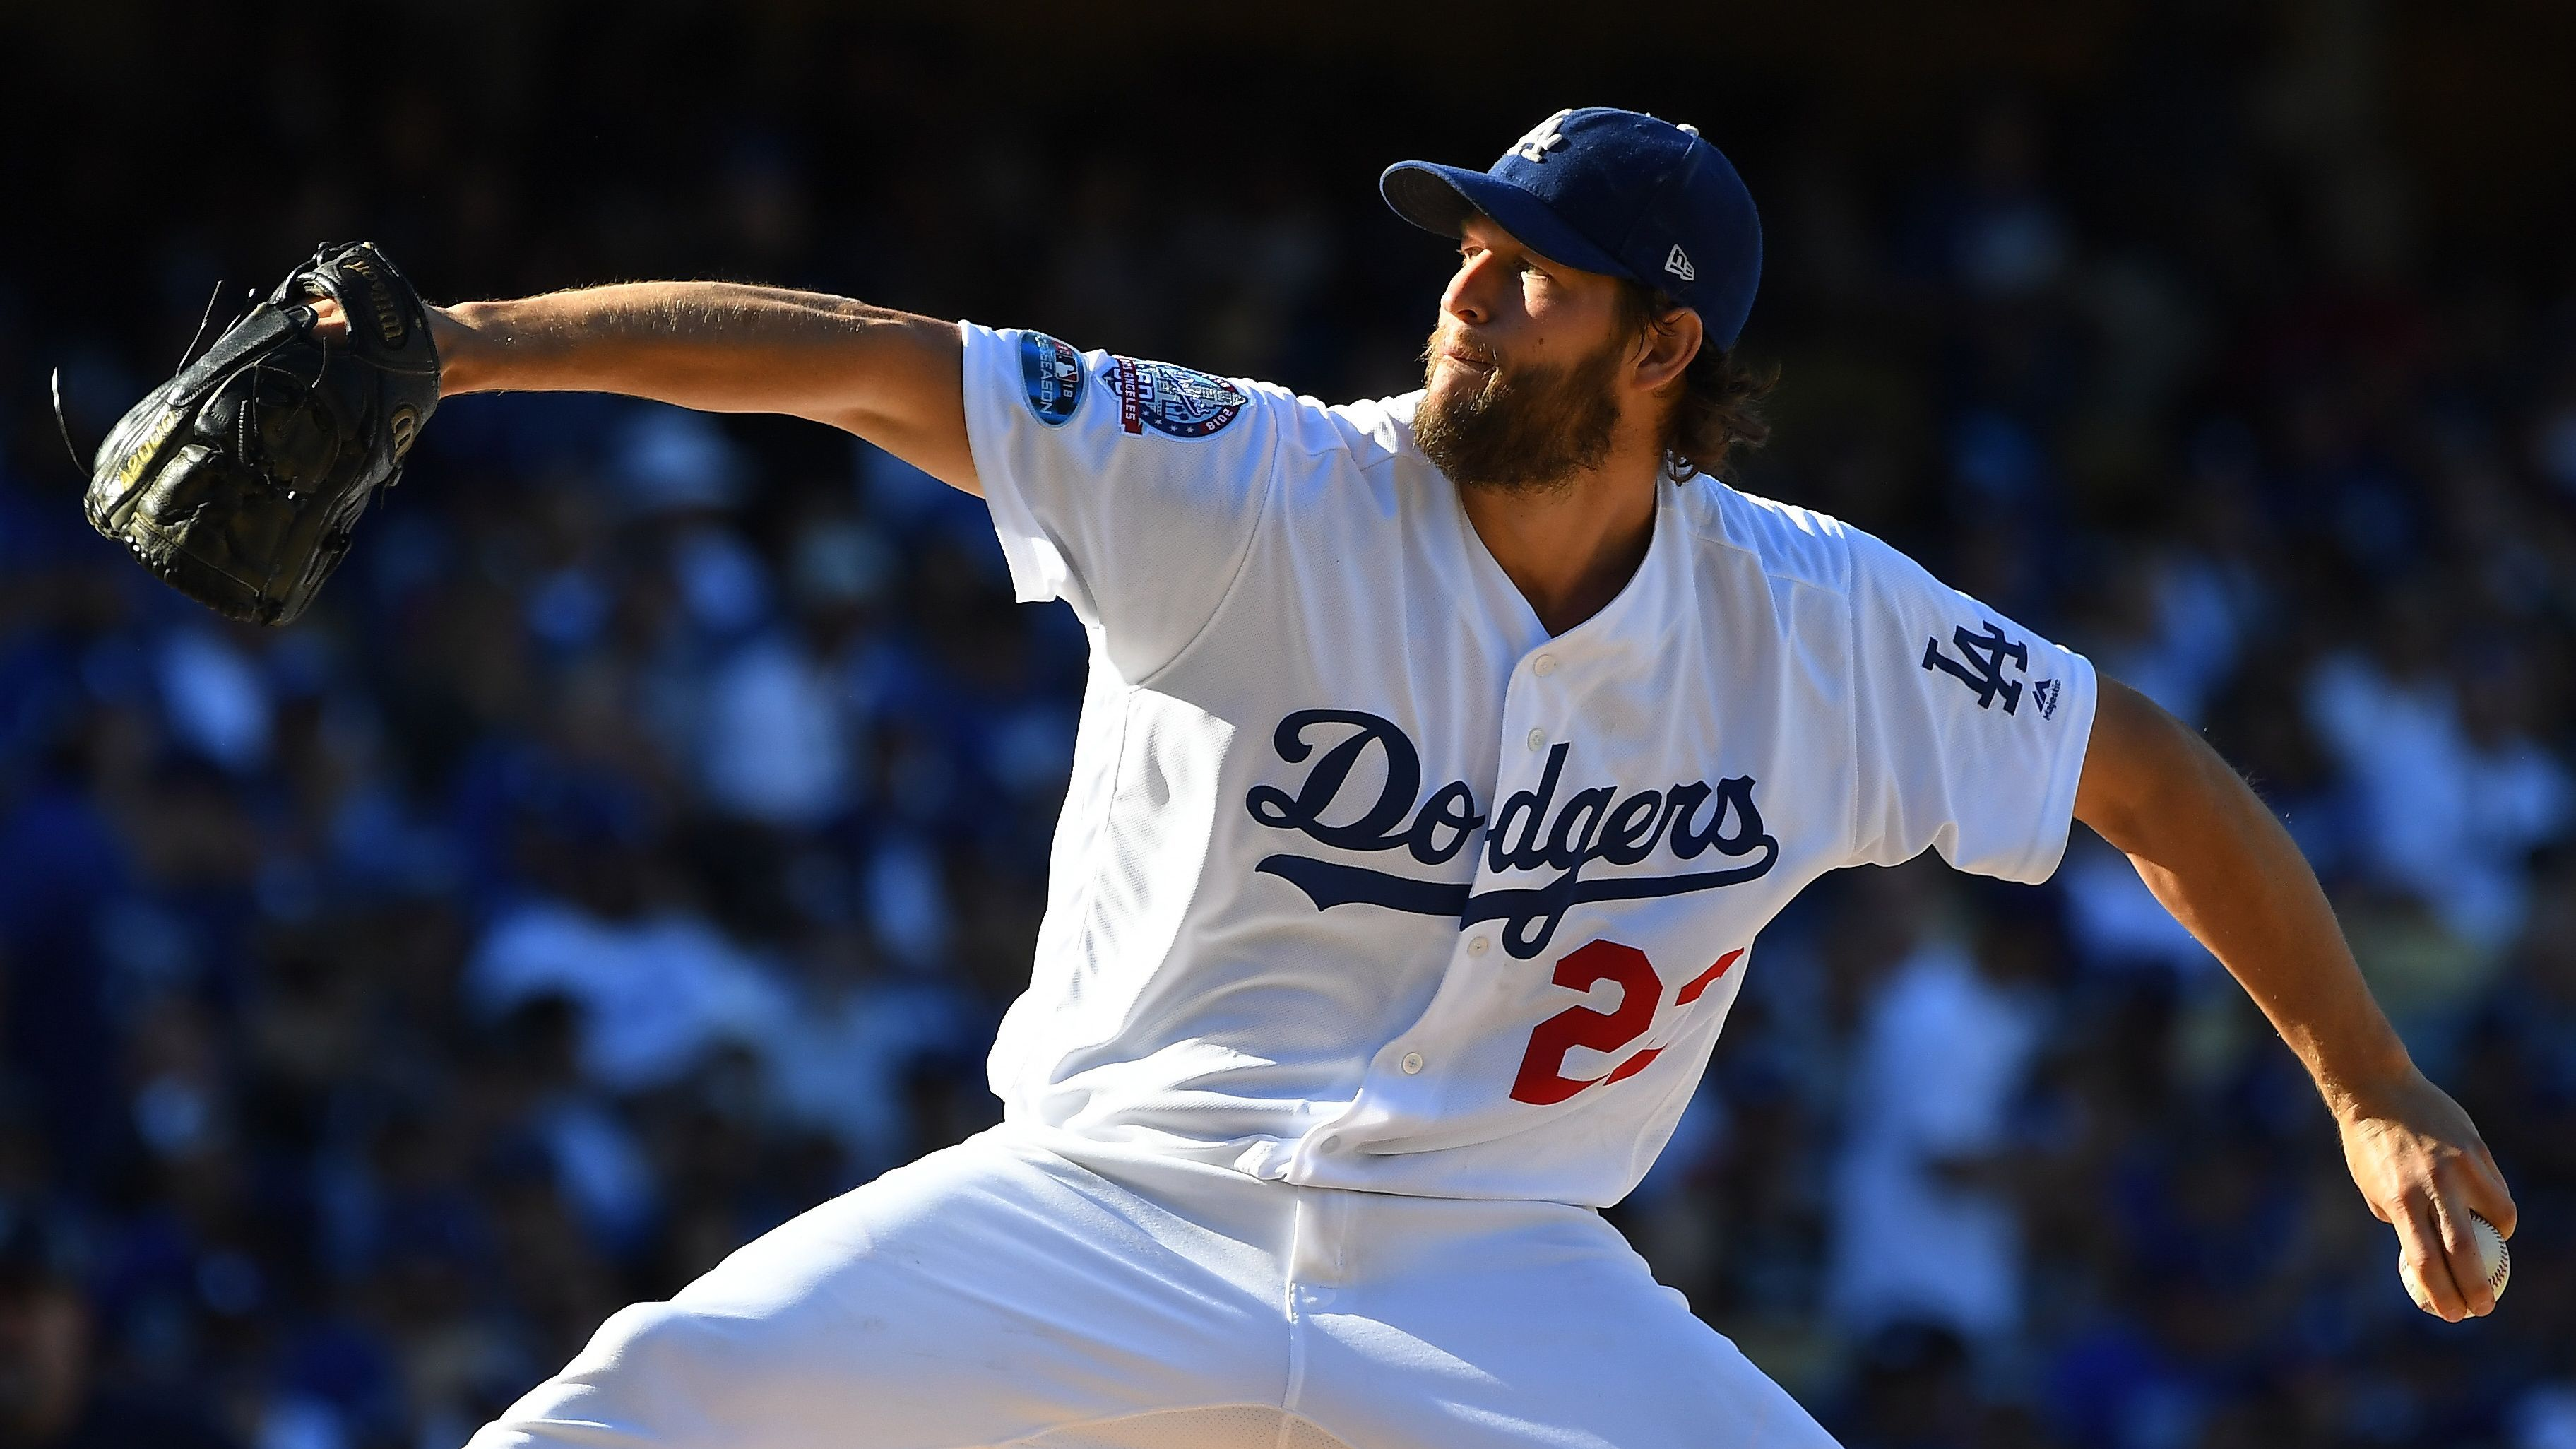 Clayton Kershaw dominates as Dodgers win NLCS Game 5 move